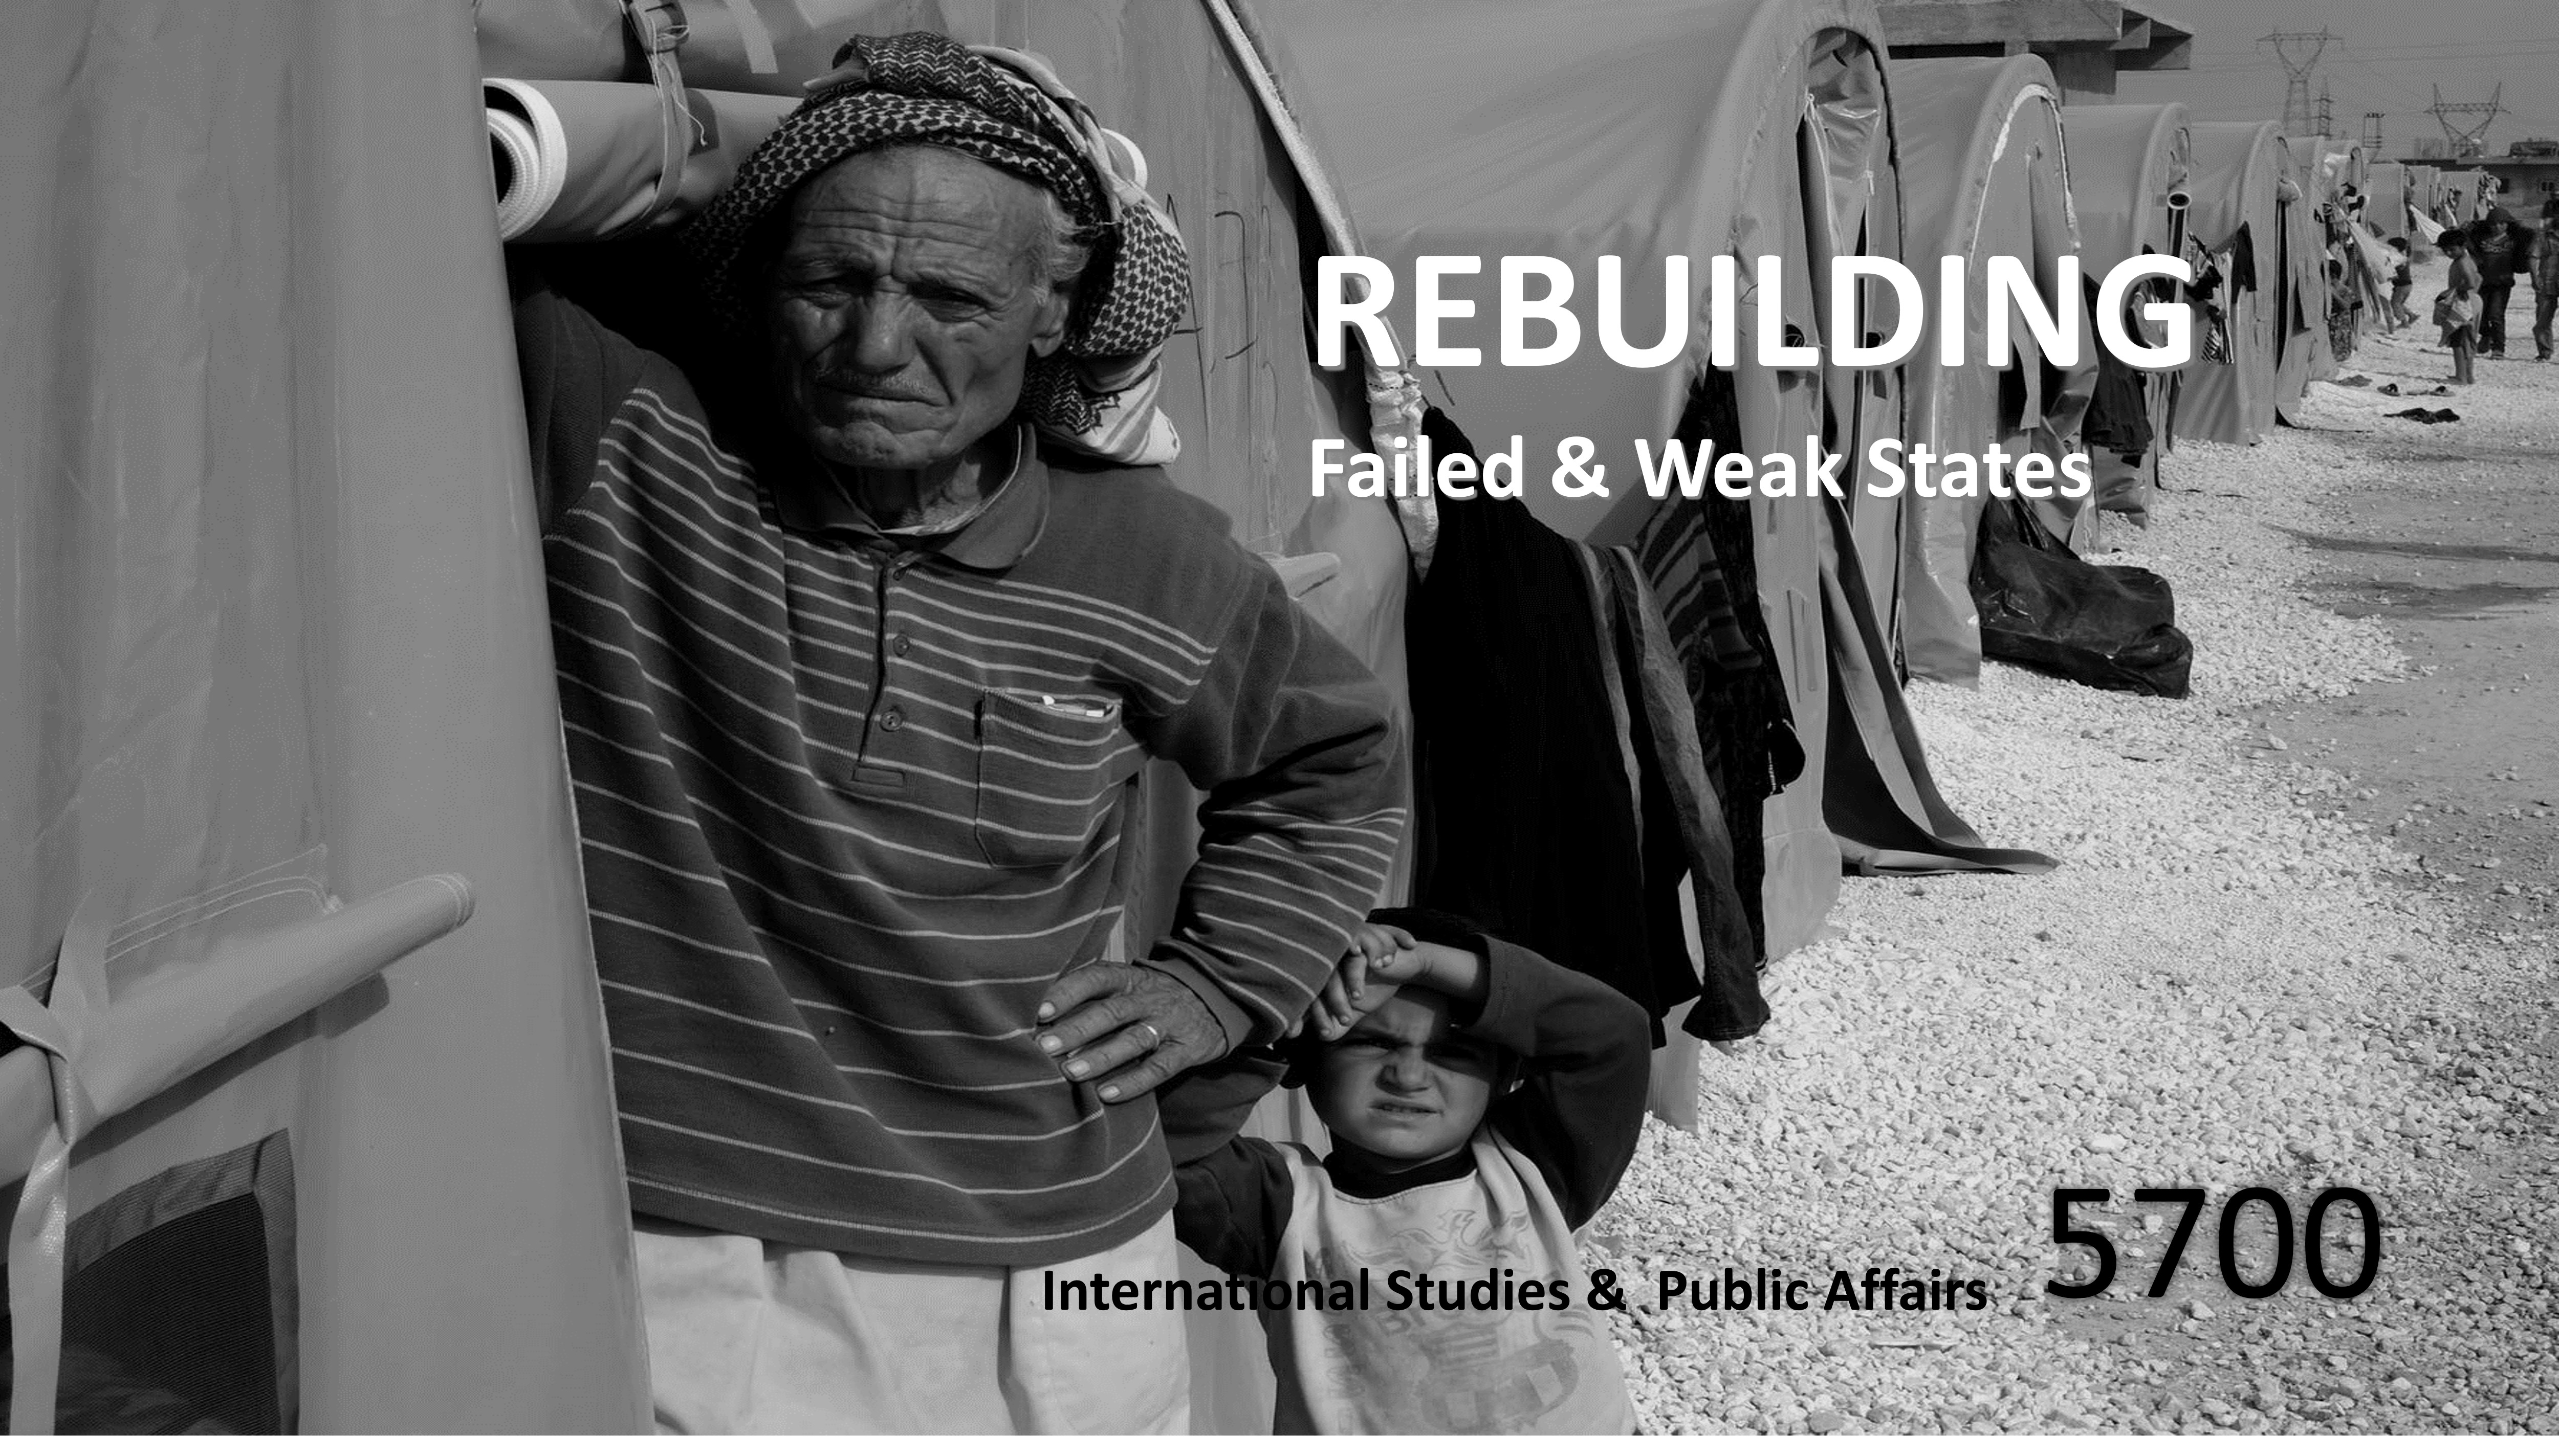 Rebuilding Failed and Weak States course flyer